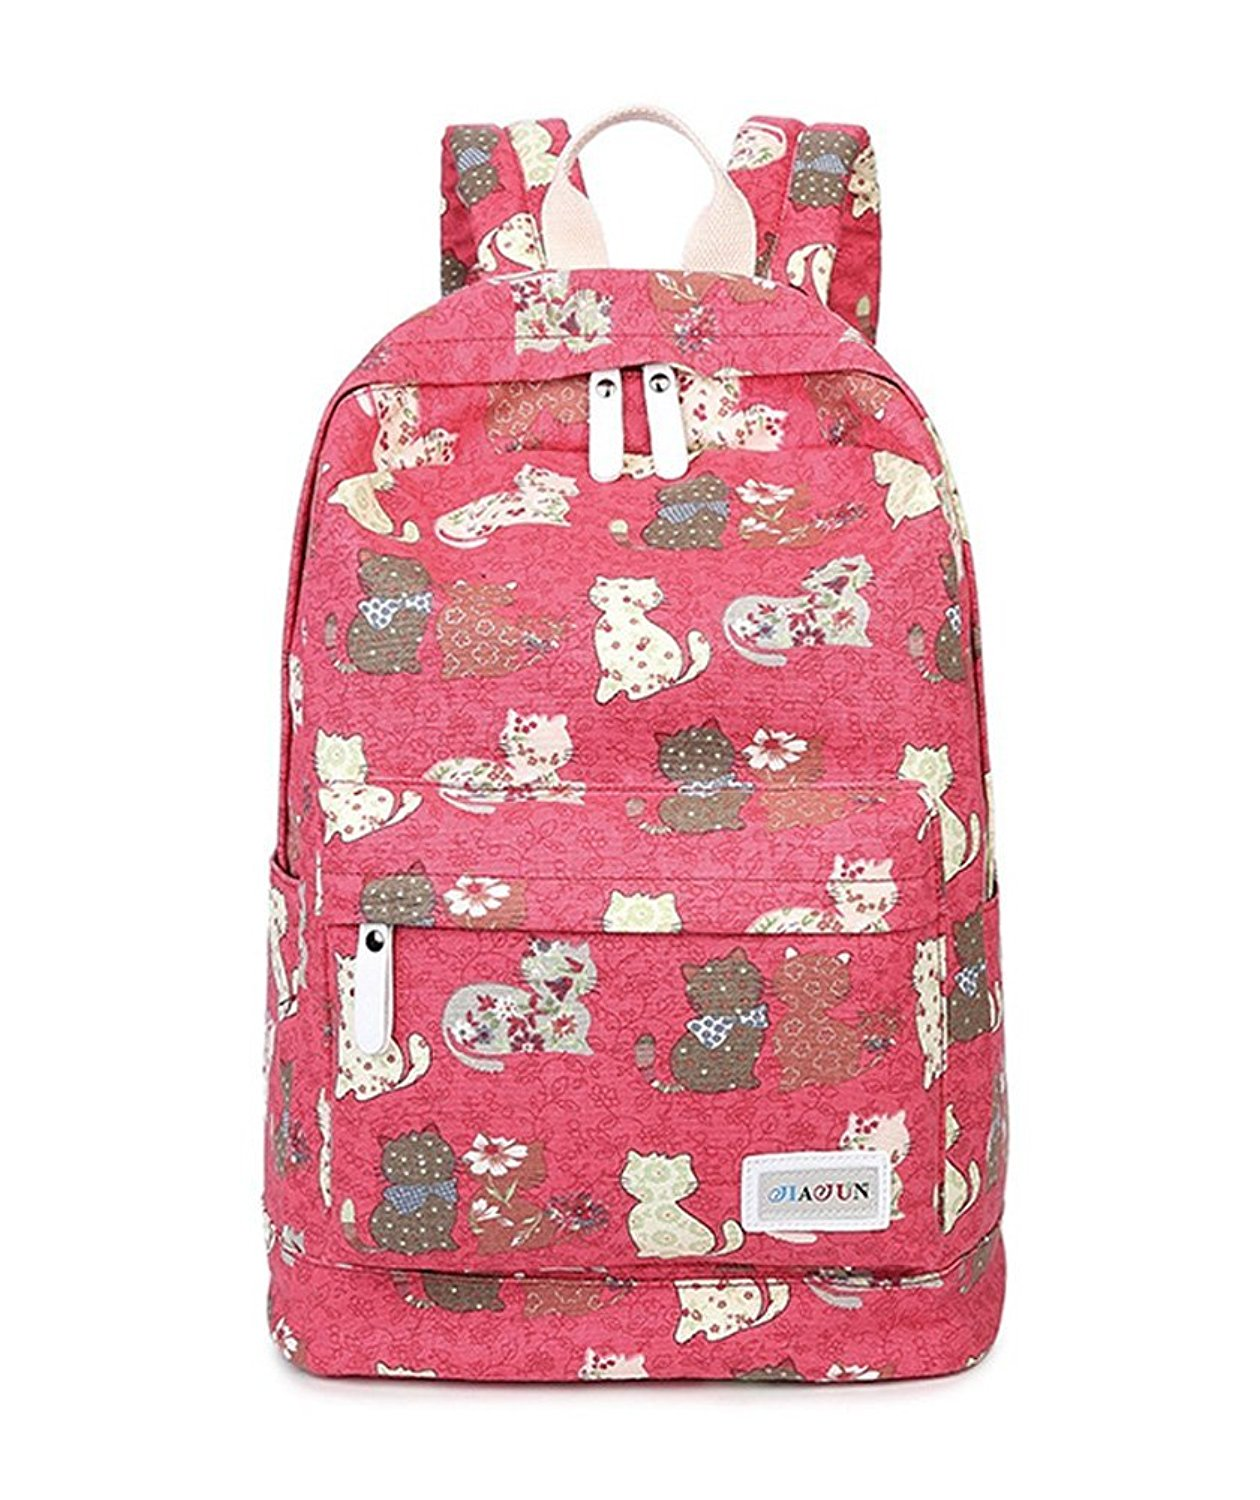 Fueken College Middle School Bags Cute Backpack for Girls Canvas Book Bag 3bbe0d7cf9